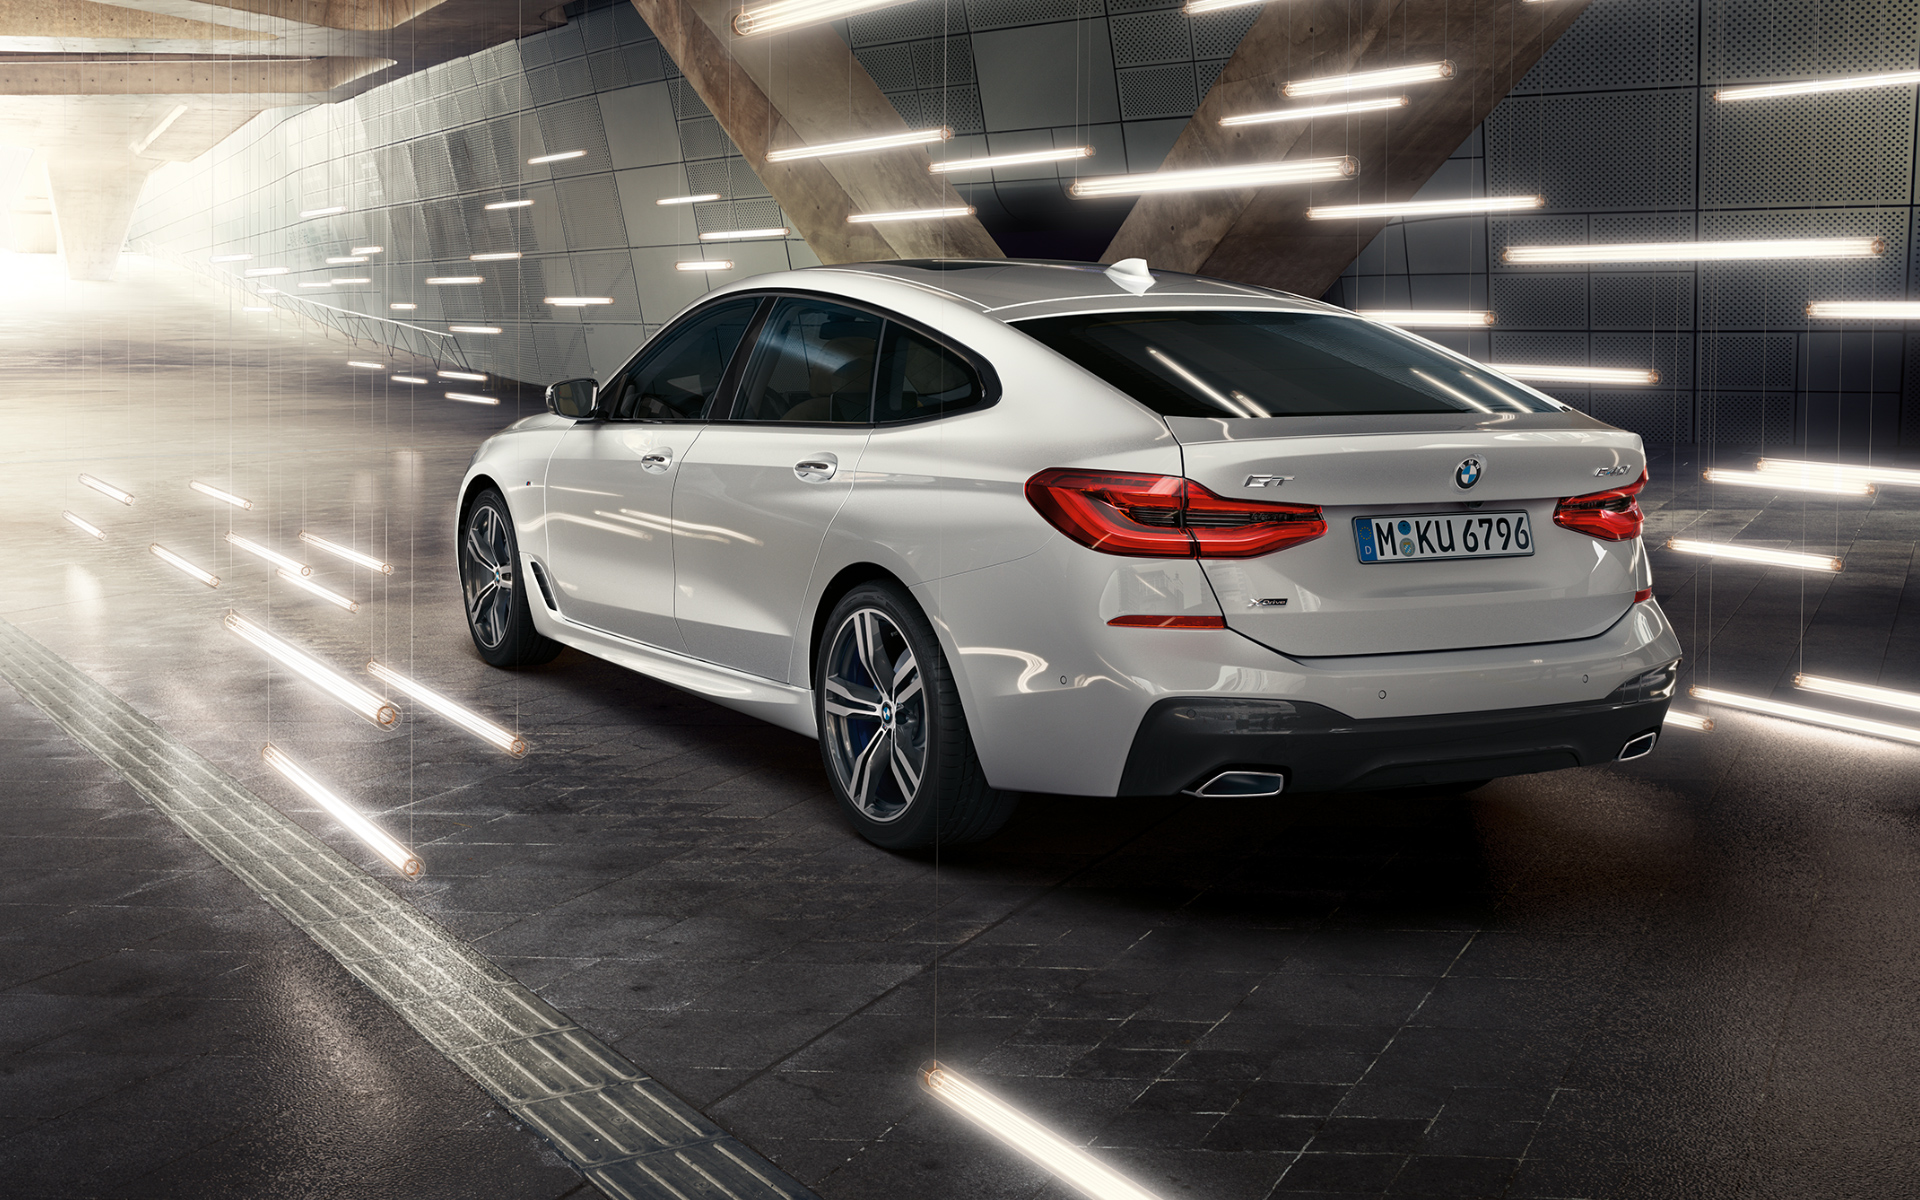 Vikram Pawah President BMW Group India Said With The Launch Of First Ever 6 Series Gran Turismo We Created A New Segment In Indian Luxury